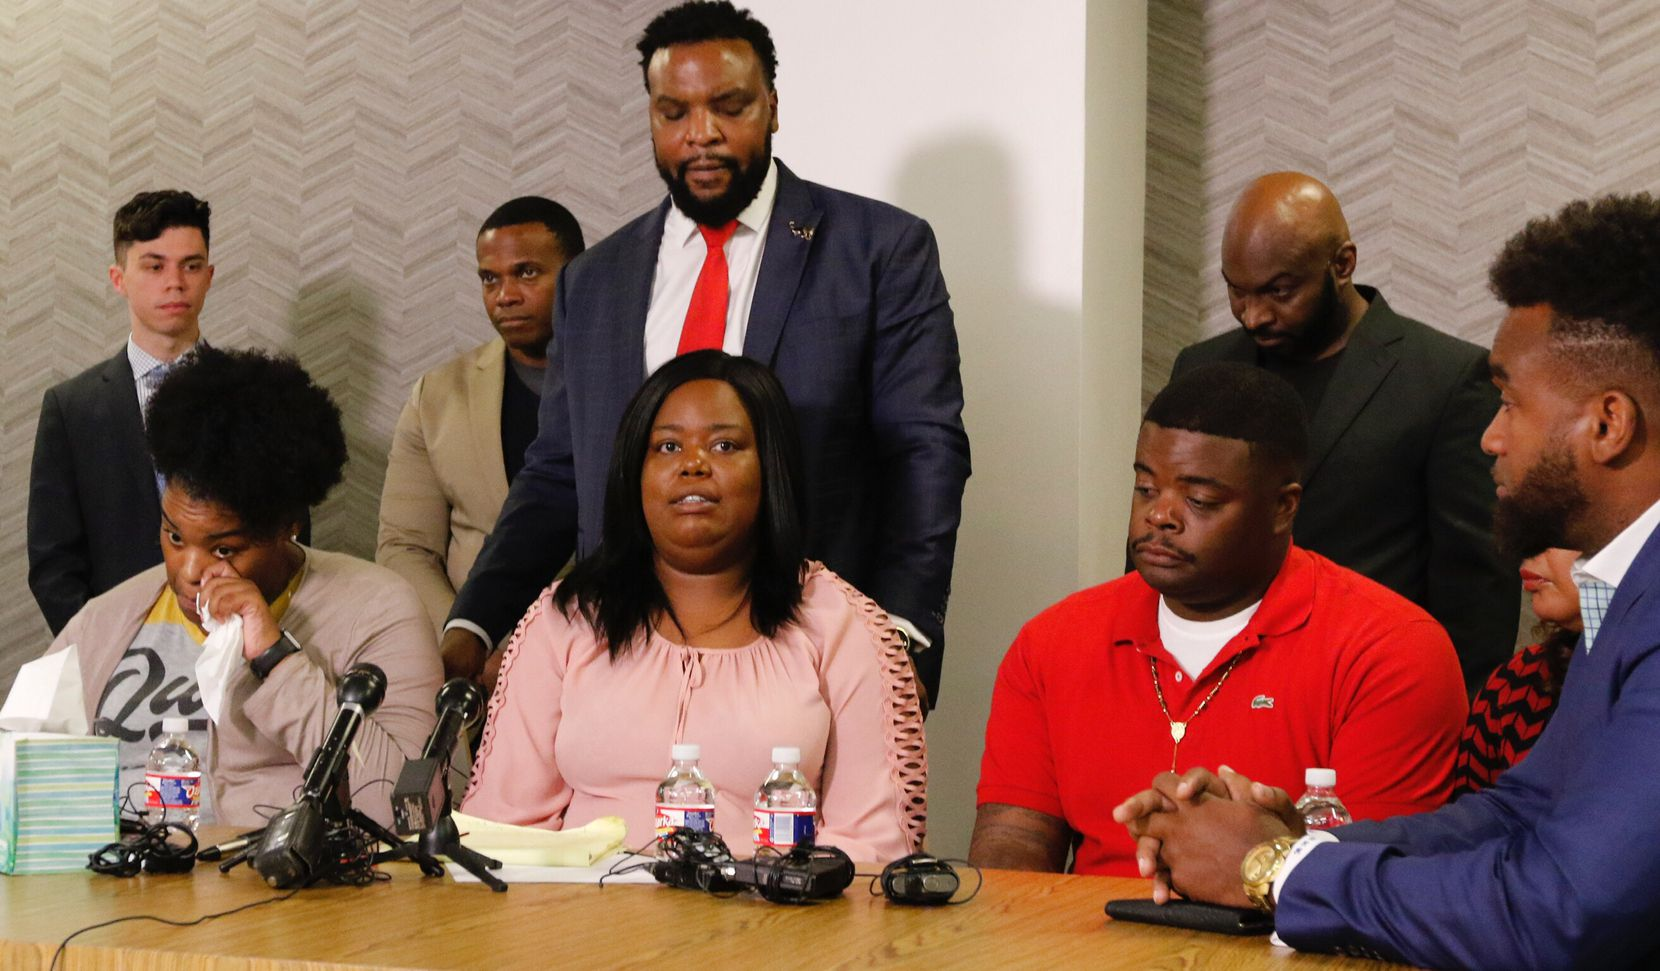 Amber Carr, left, wipes a tear as her sister Ashley Carr, center, talks about their sister, Atatiana Jefferson, their brother, Adarius Carr, right and attorney Lee Merritt, standing, listen during a press conference at 1910 Pacific on Monday morning, October 14, 2019 in downtown Dallas. Atatiana Jefferson, a 28-year-old black woman, was shot and killed in her home by a white Fort Worth police officer during a welfare check.